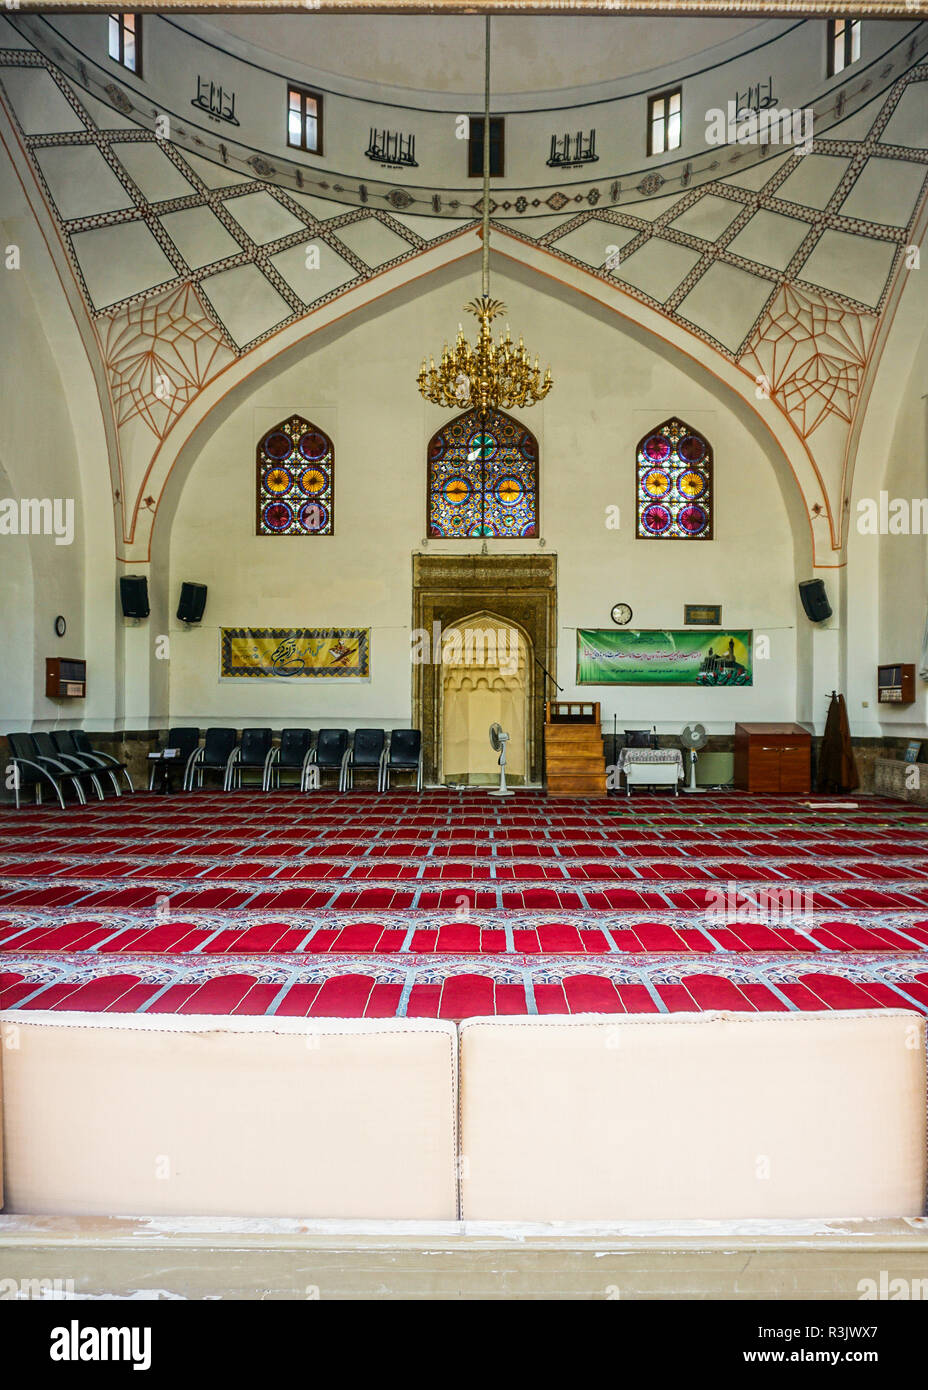 Yerevan Central Blue Mosque Interior View of Mihrab and Carpets - Stock Image